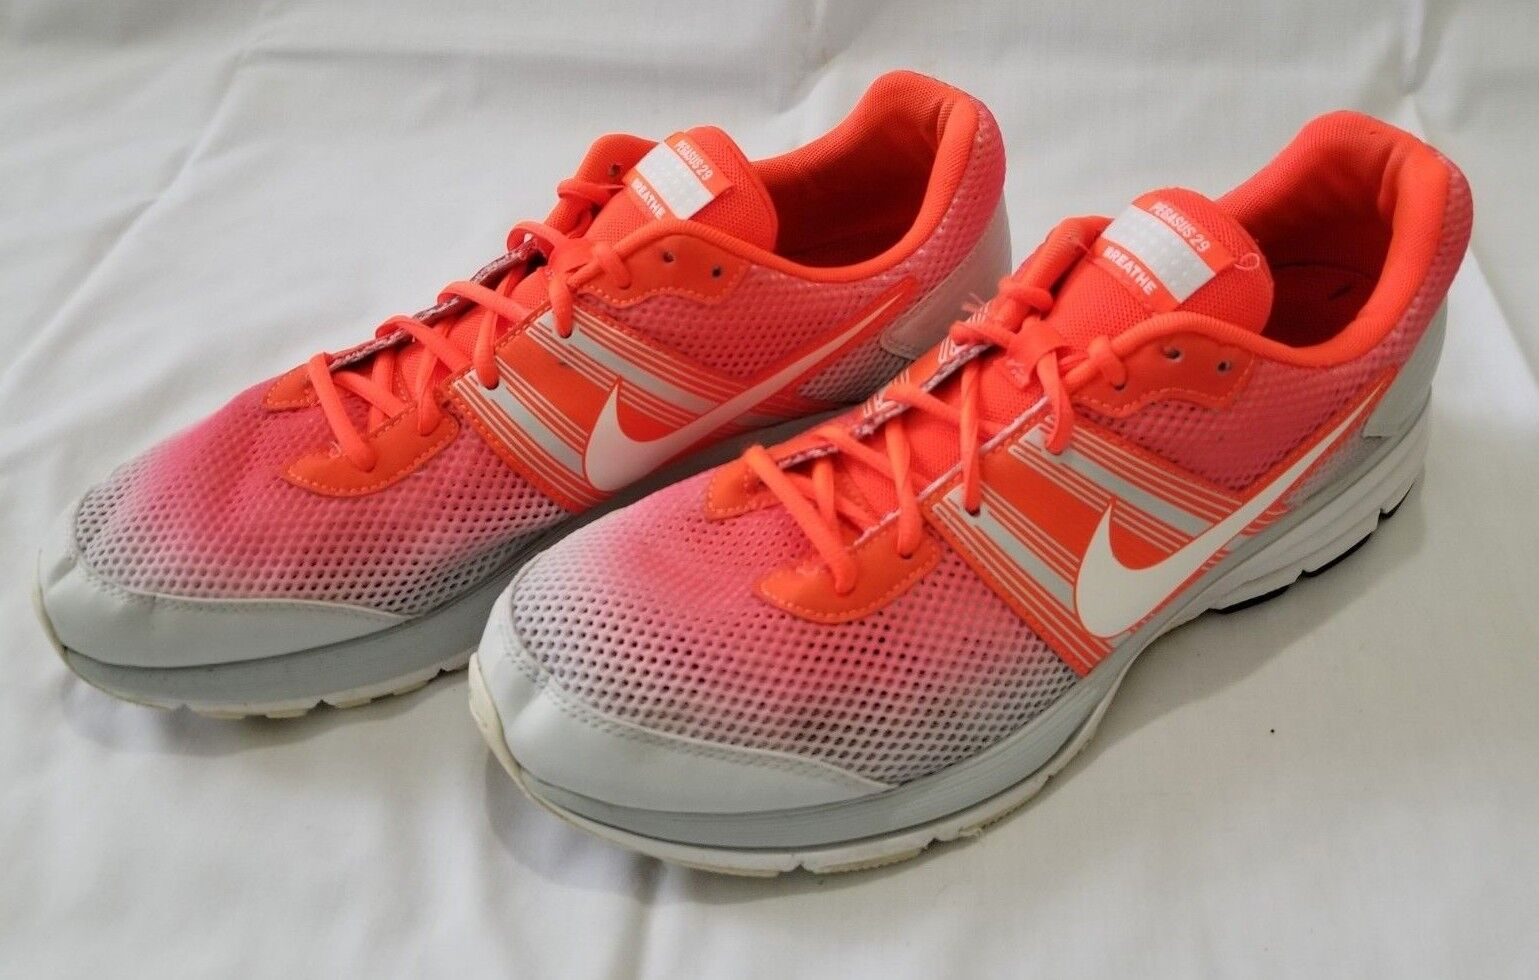 Uomo Size 13 Grey Pink Nike Air Pegasus 29 Breathe Running Shoes 579955-810 used